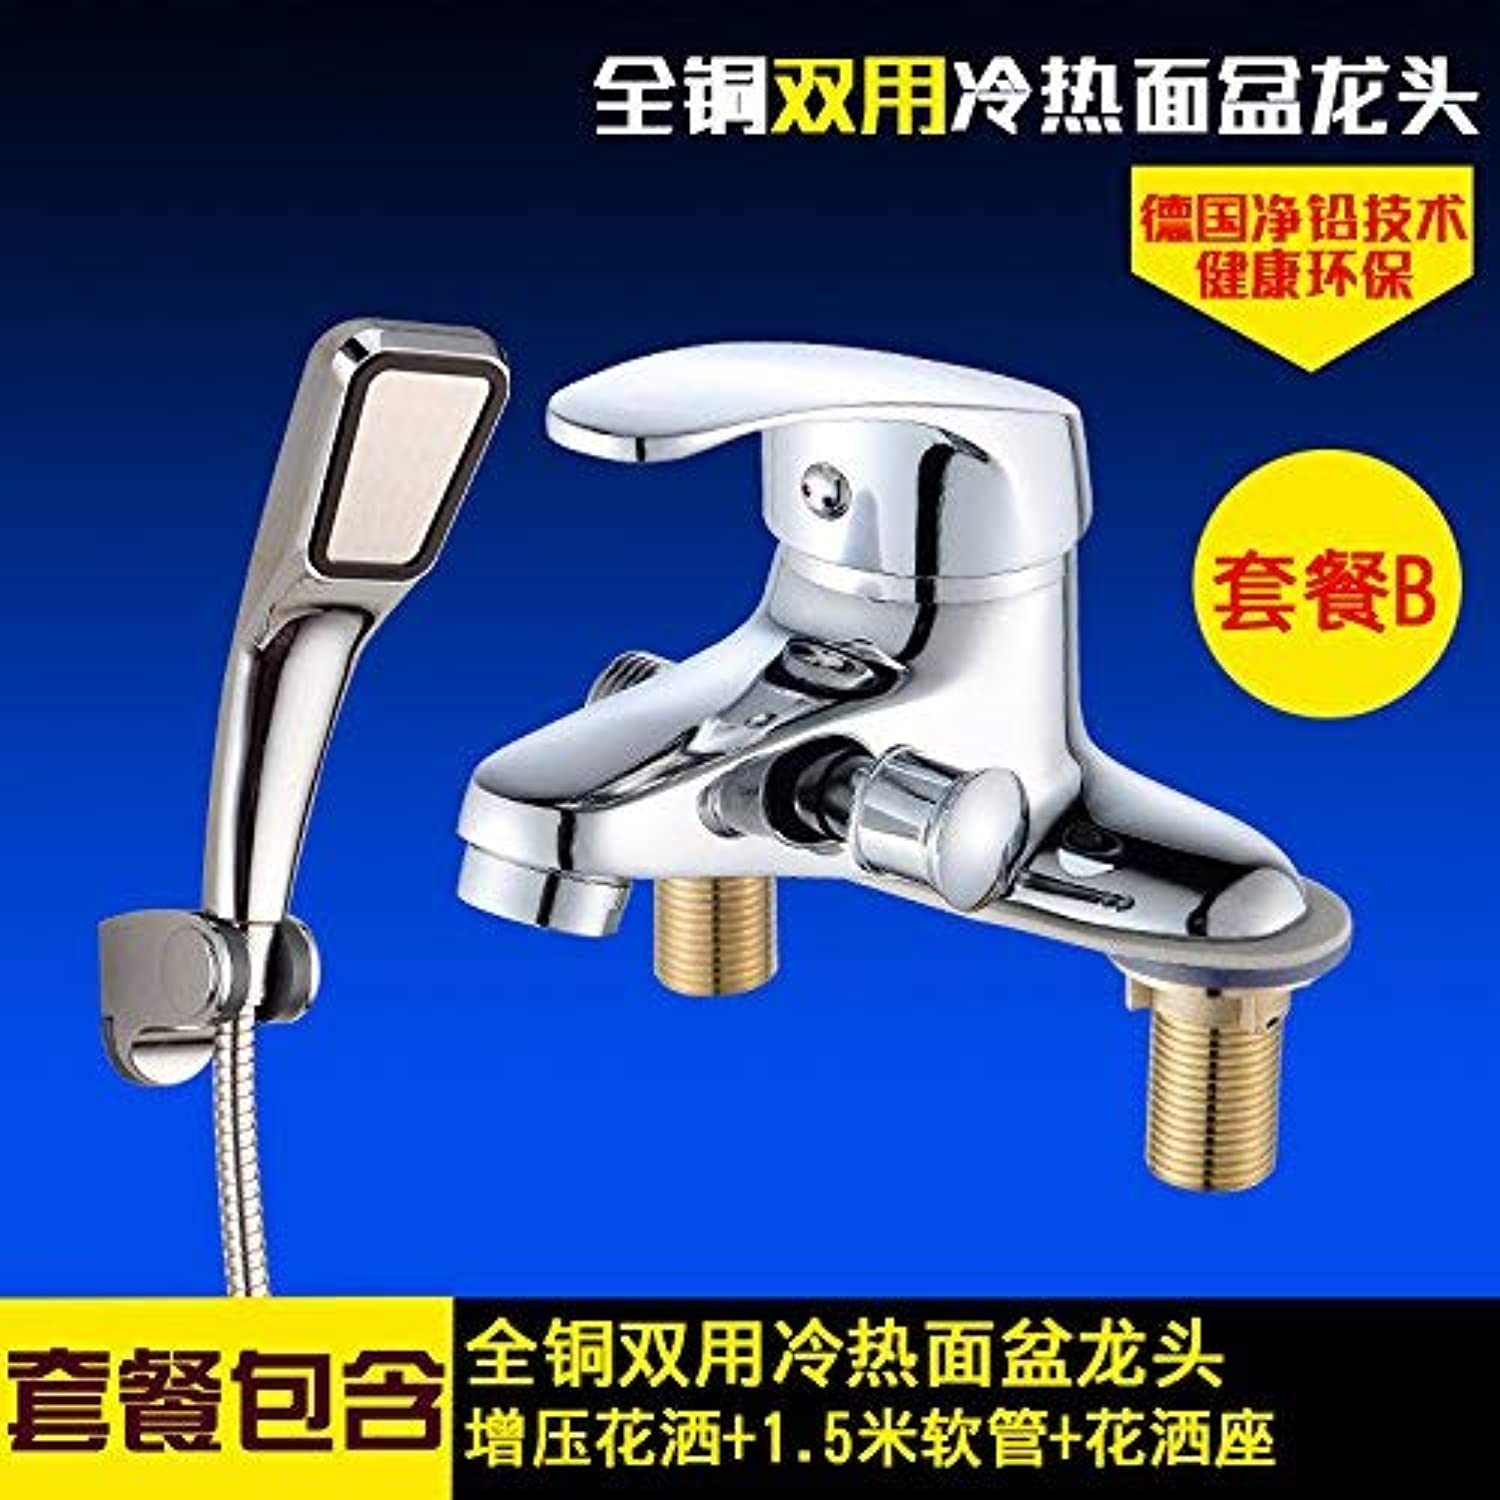 Oudan The copper double-hole faucet basin mixer water valve with showers and cold water bath with double Washbasin Faucet, brass, with a strong bilateral pressure shower kit